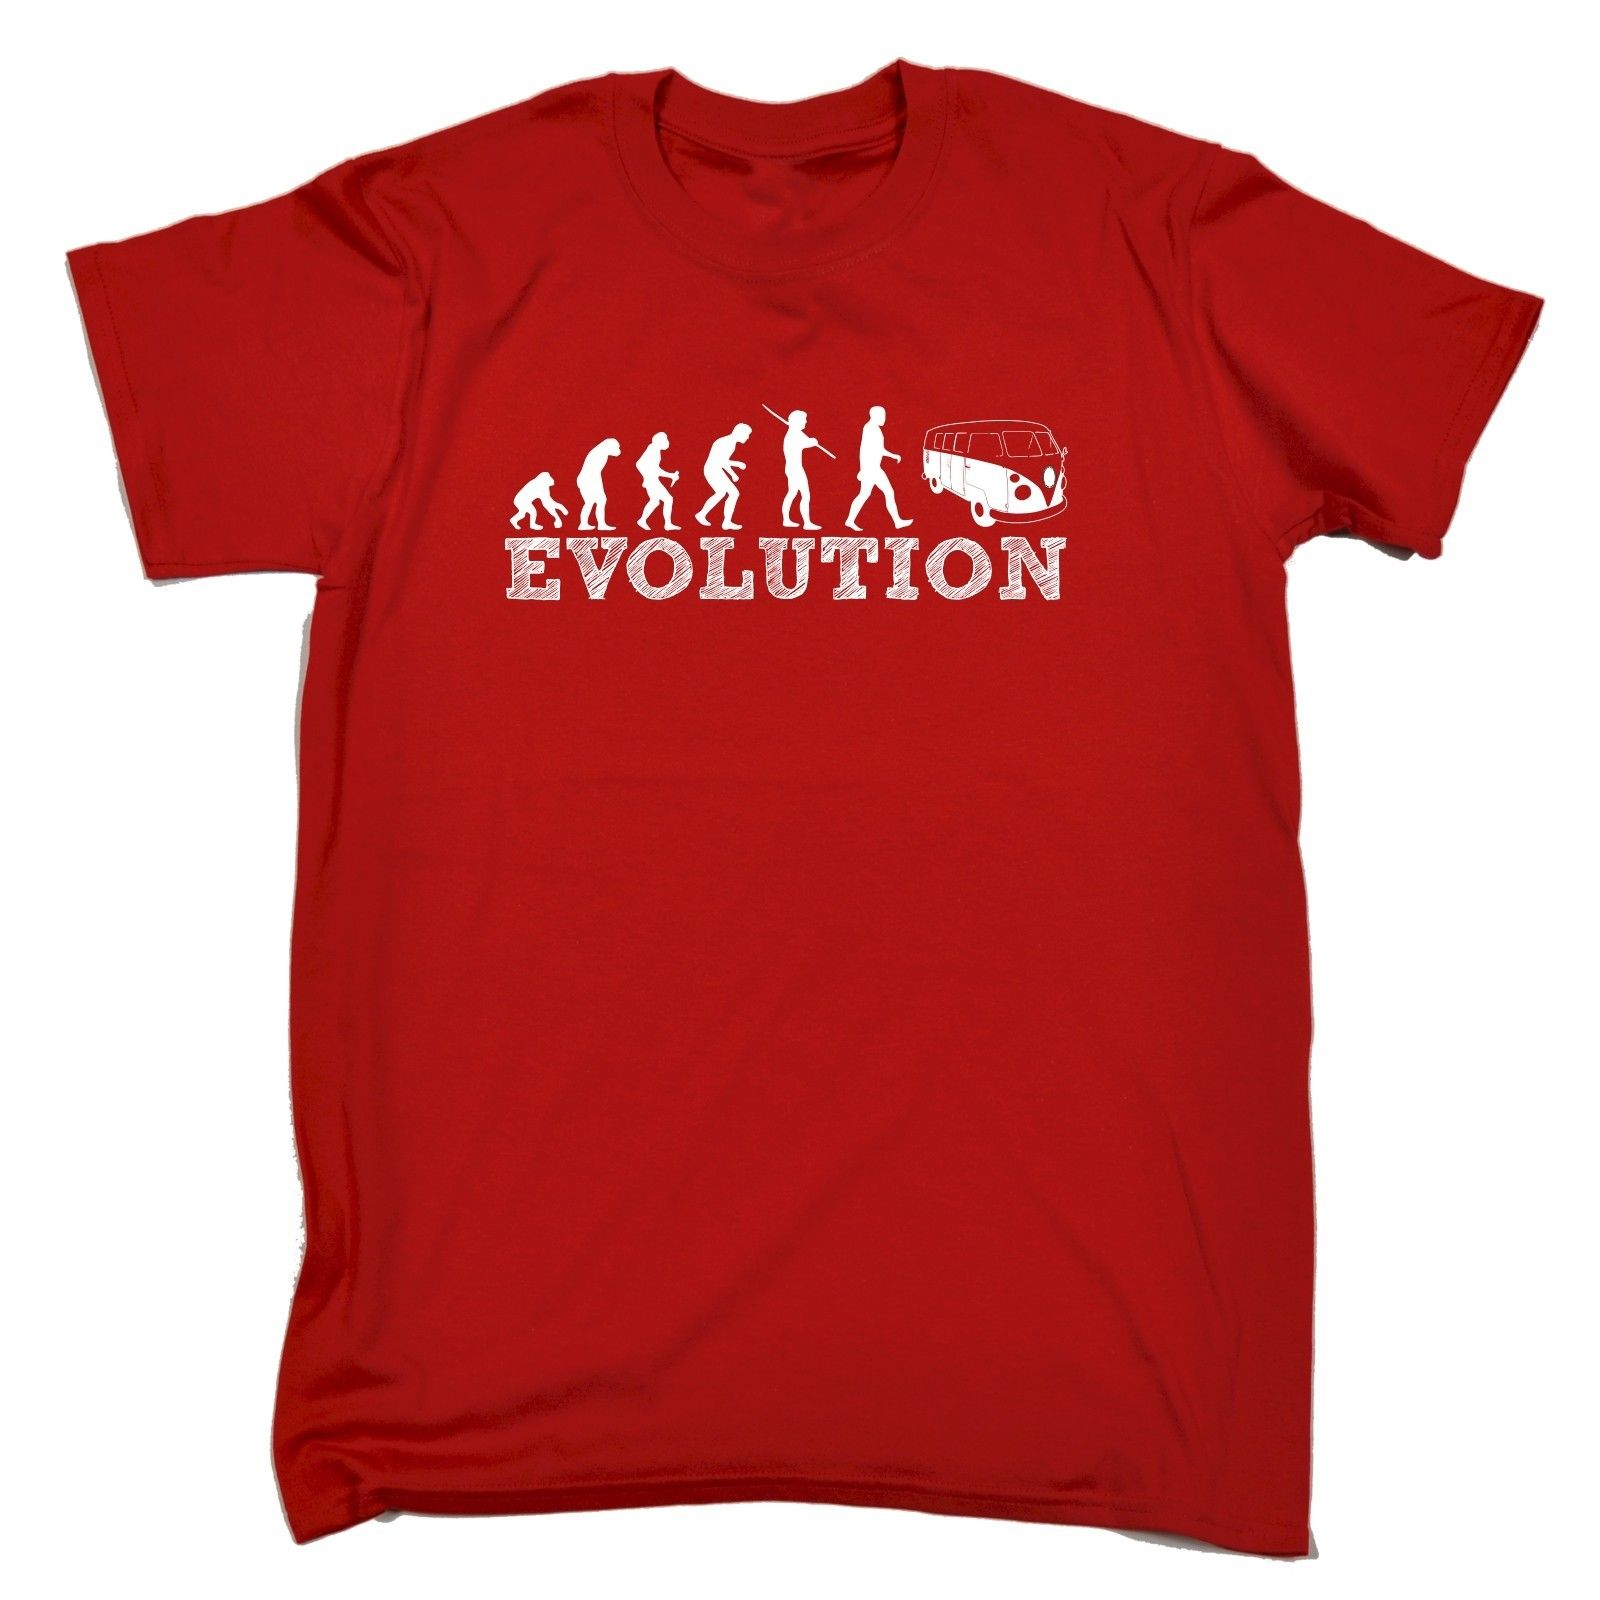 Evolution T-SHIRT Tee Campervan Van Surfer Dude Surfer Funny Birthday Gift New Fashion Cool Casual T Shirts Loose Anime